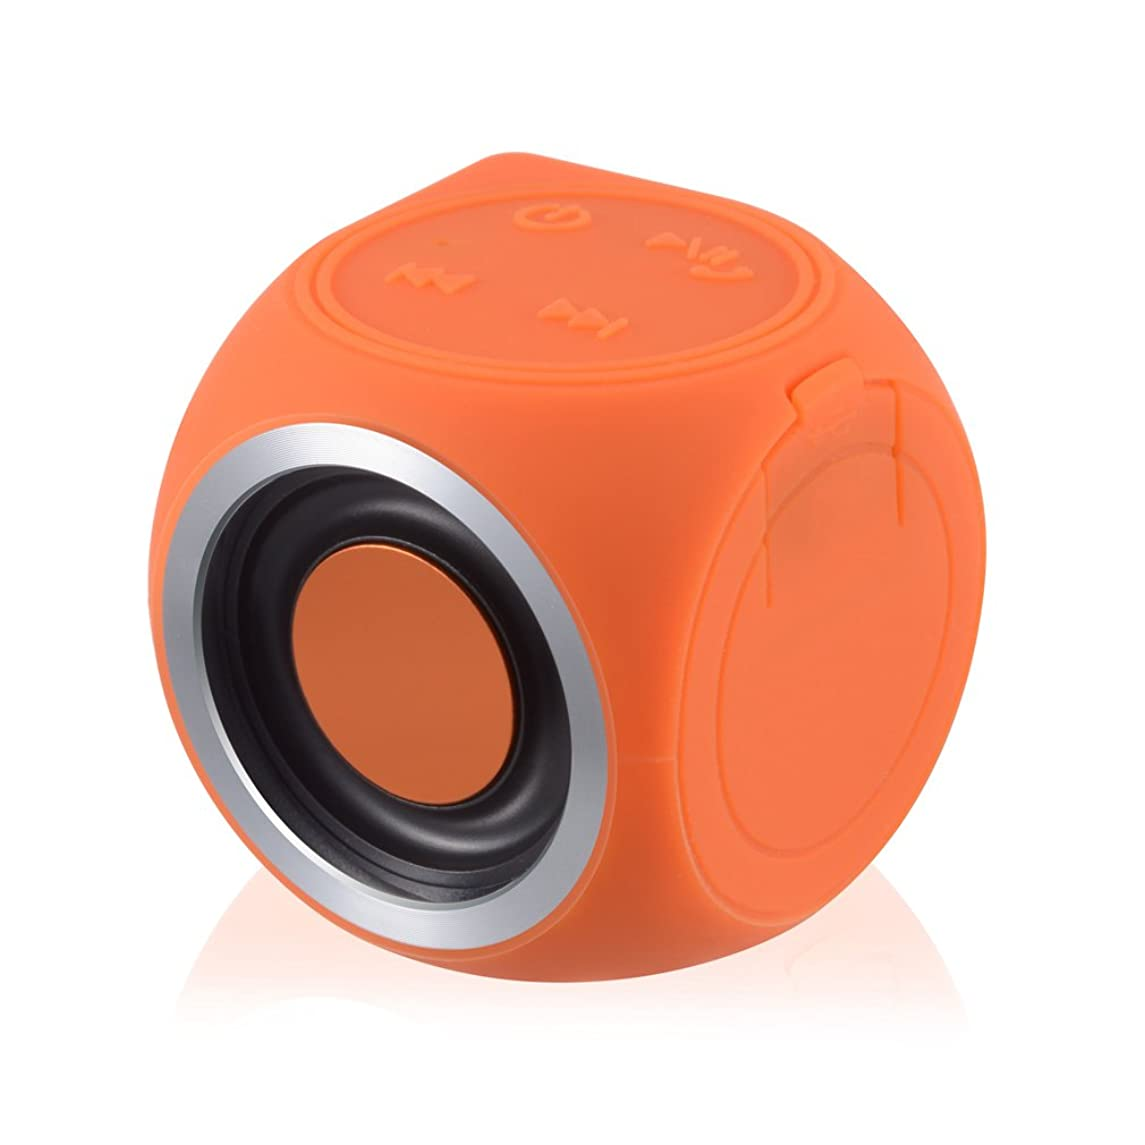 DaLanZom Dice Waterproof Bluetooth Speaker - IPX7 Water-proof Portable Wireless 3D-Tumbler Stereo with Built-in Mic Handsfree for Phone Call, Compatible with IOS and Android - Orange